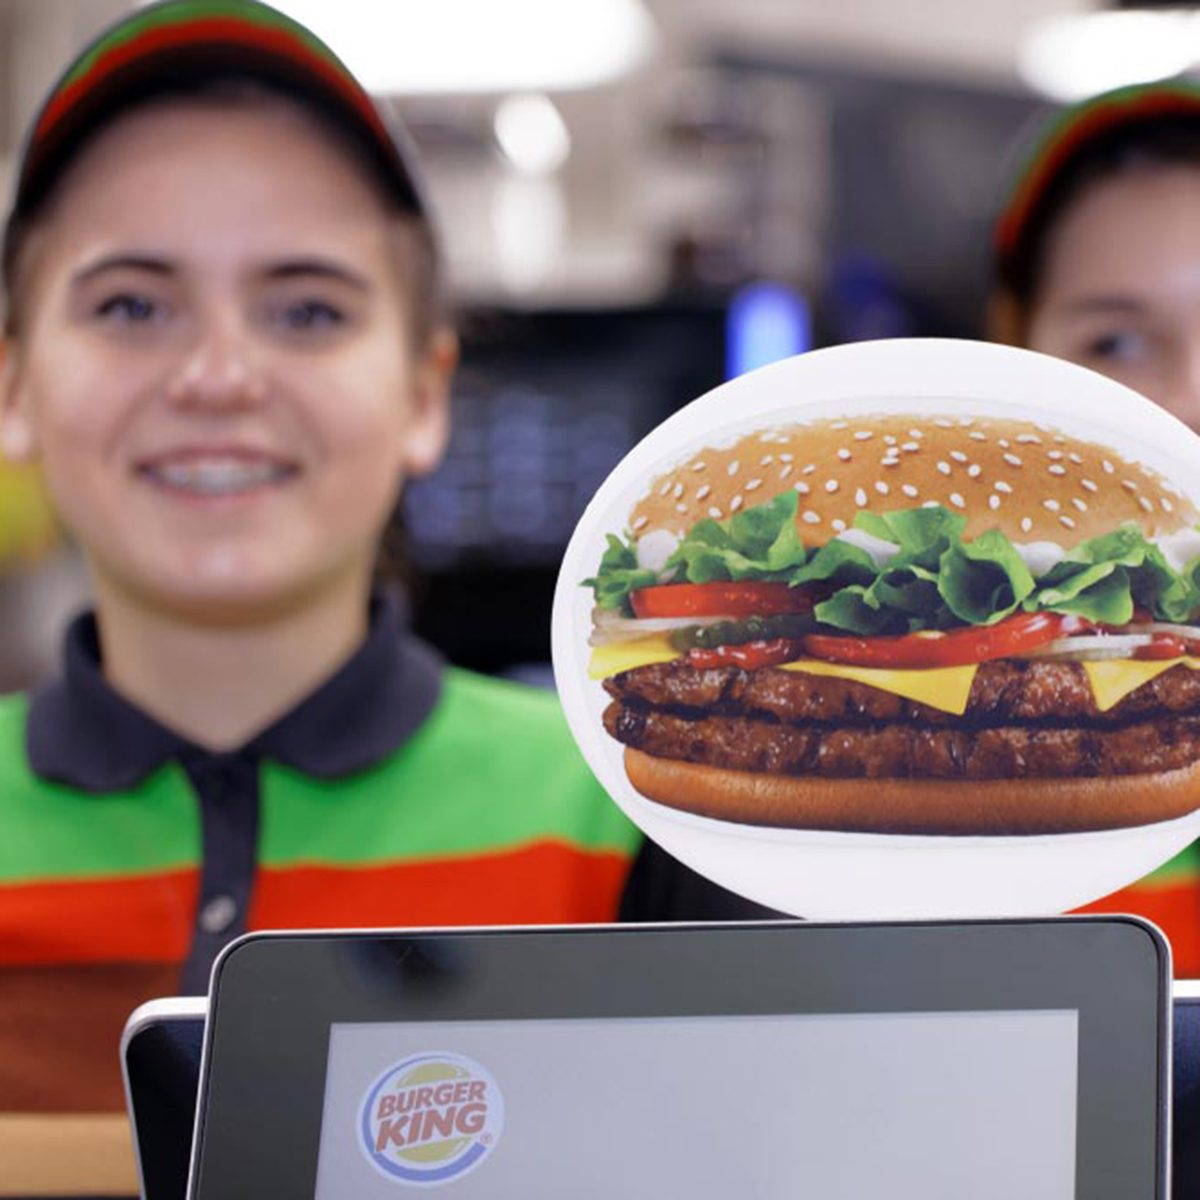 taff of 500th Burger King restaurant in Russia in the service area in the day of opening.